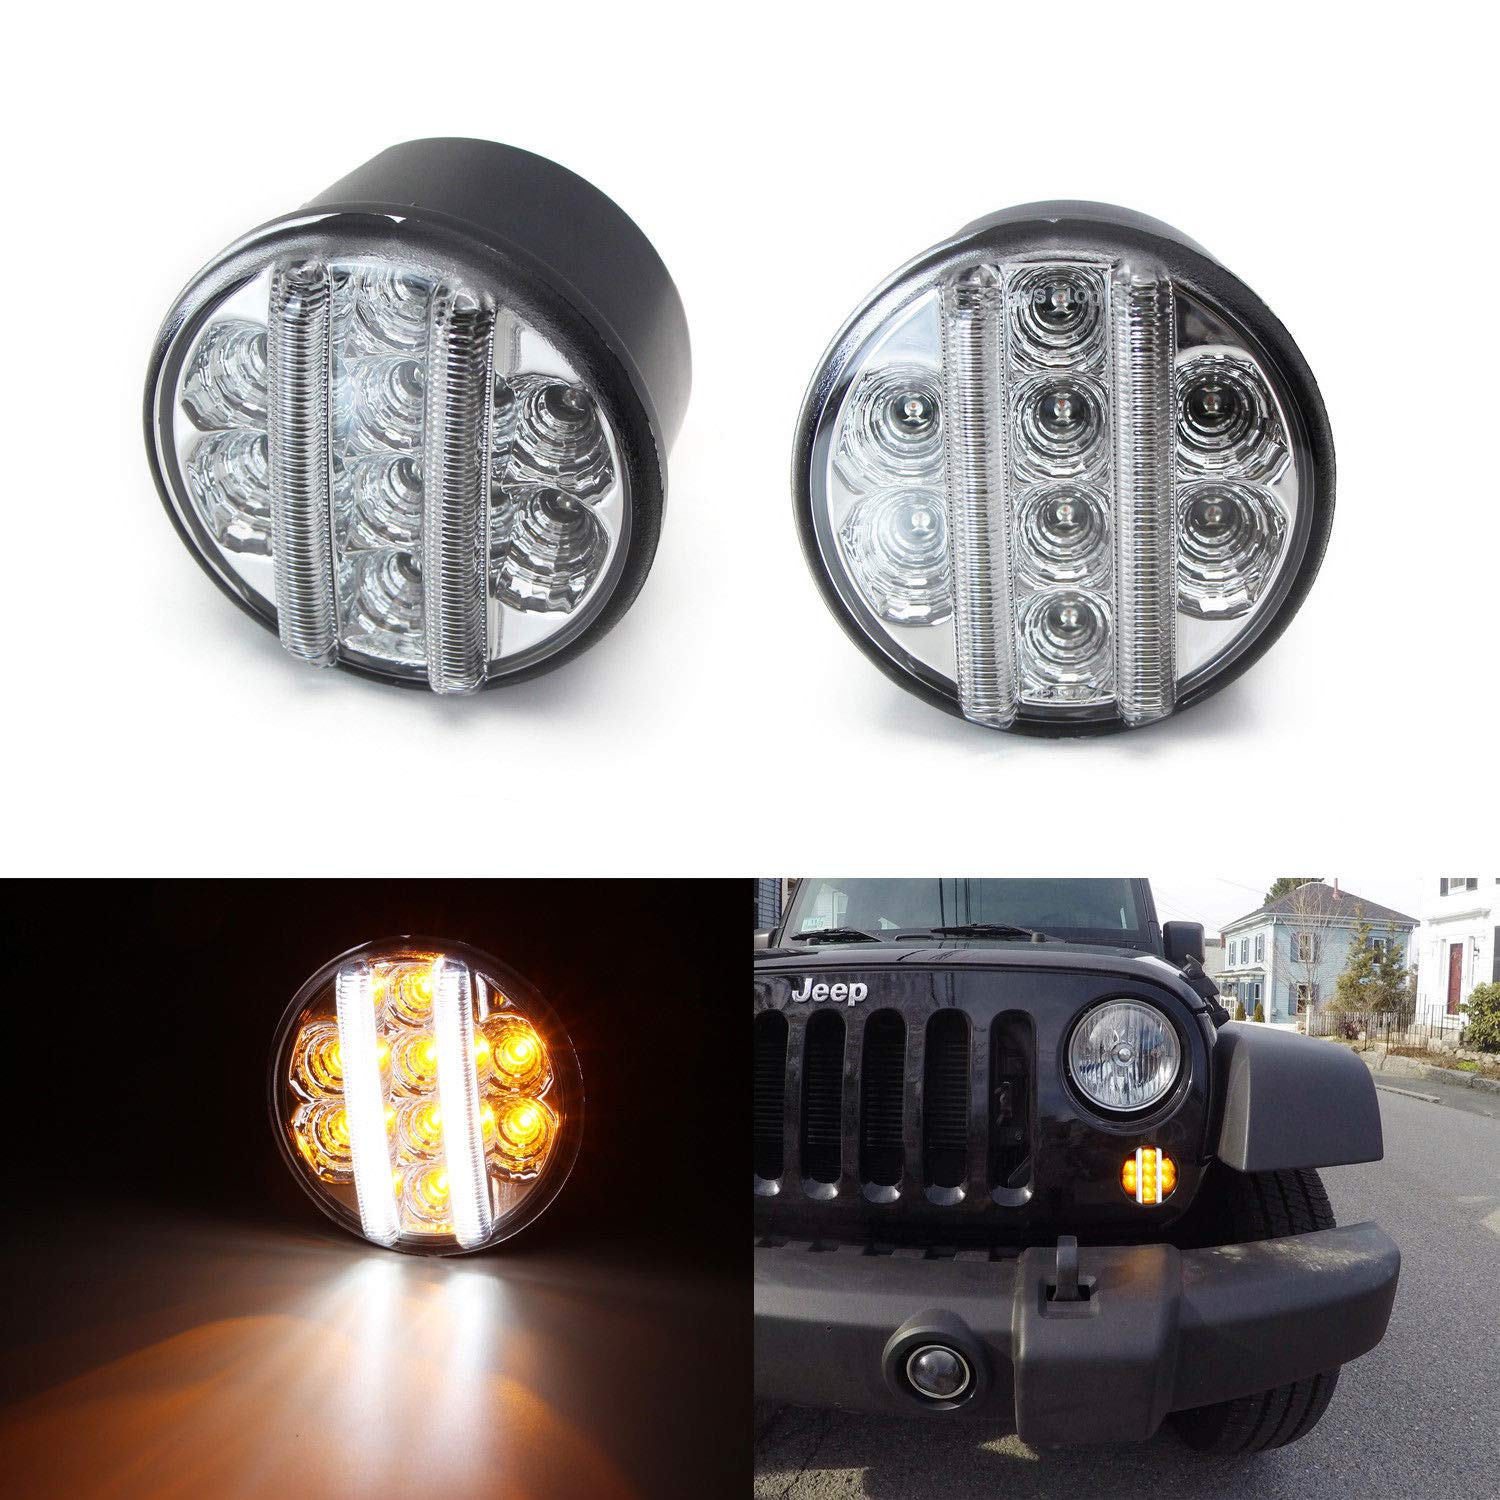 iJDMTOY (2) Clear Lens LED DRL Turn Signal Assembly For 07-17 Jeep Wrangler (White LED Vertical Bars as Daytime Running Lights & Amber LED Dots as Turn Signal Lights) iJDMTOY Auto Accessories Front Bumper Blinker Signal Light Assy